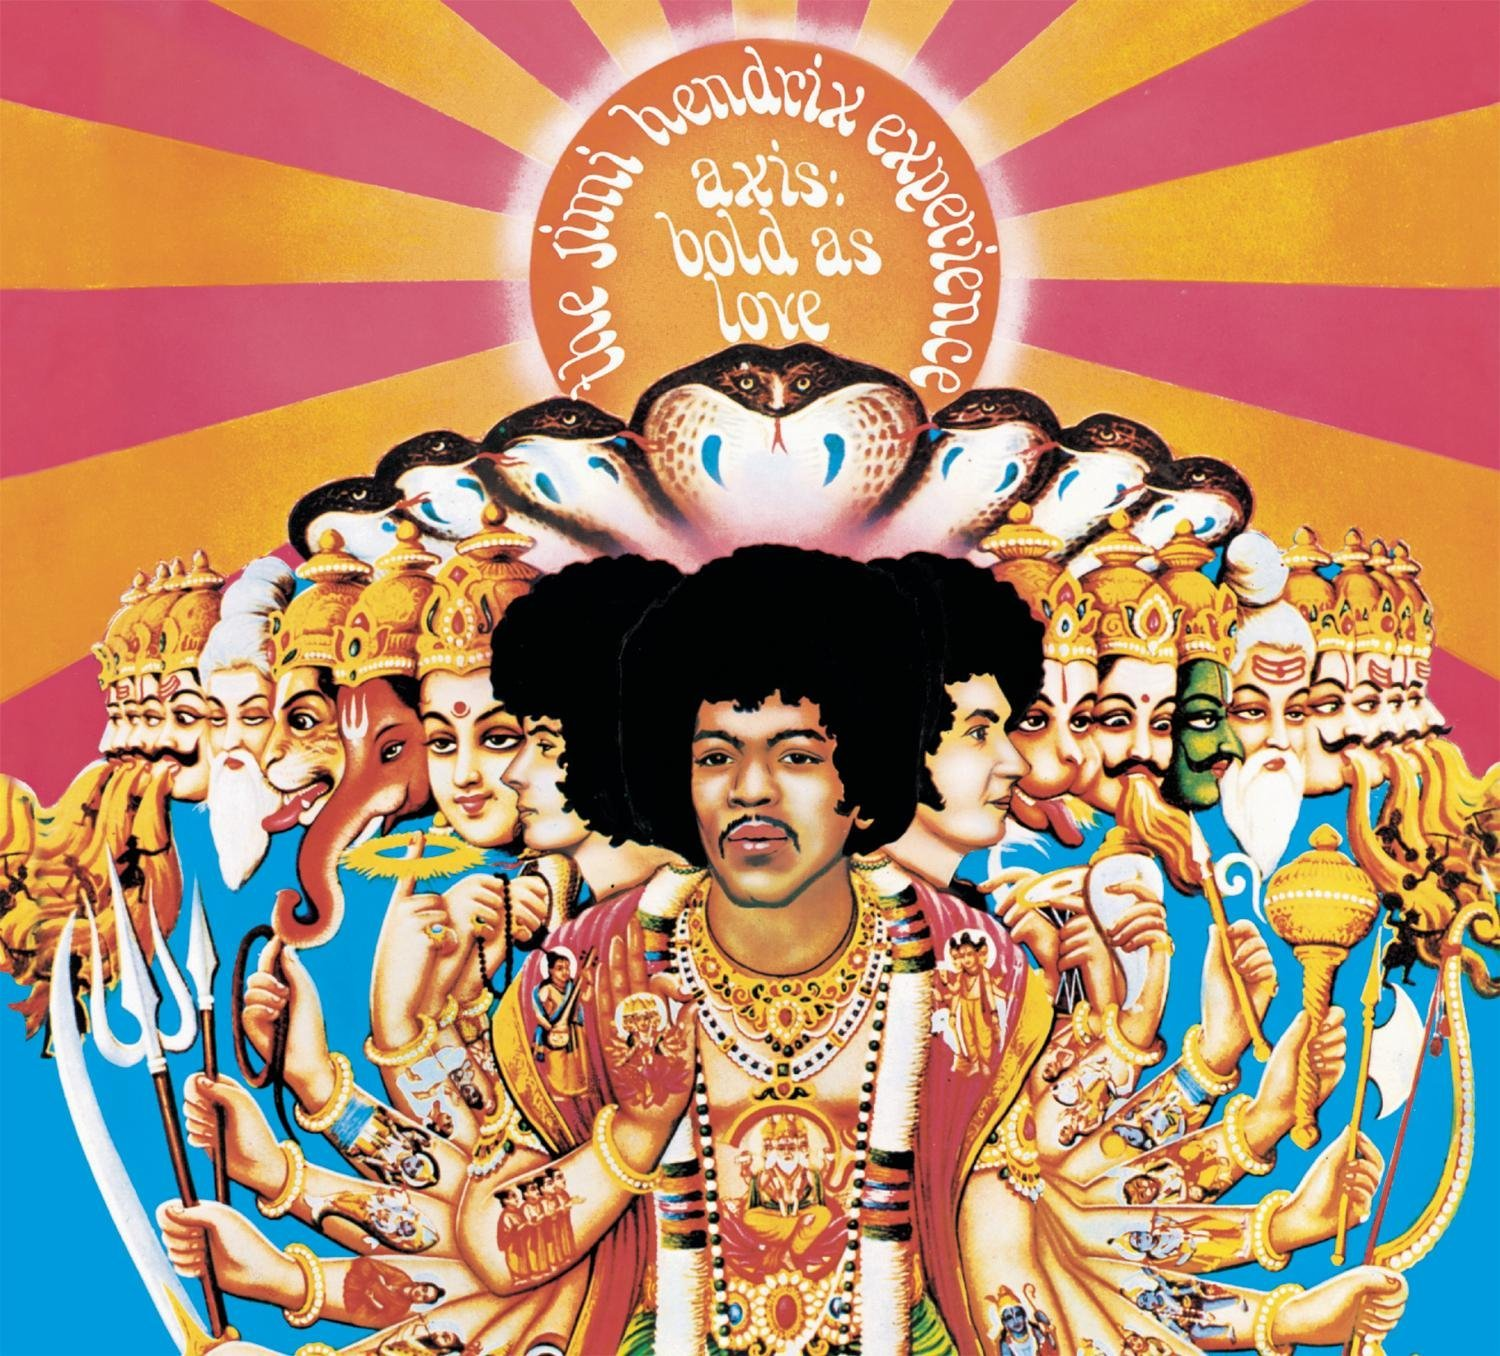 Axis : Bold as Love, The Jimi Hendrix Experience, Track Record, 1967. Illustration de David King et Roger Law